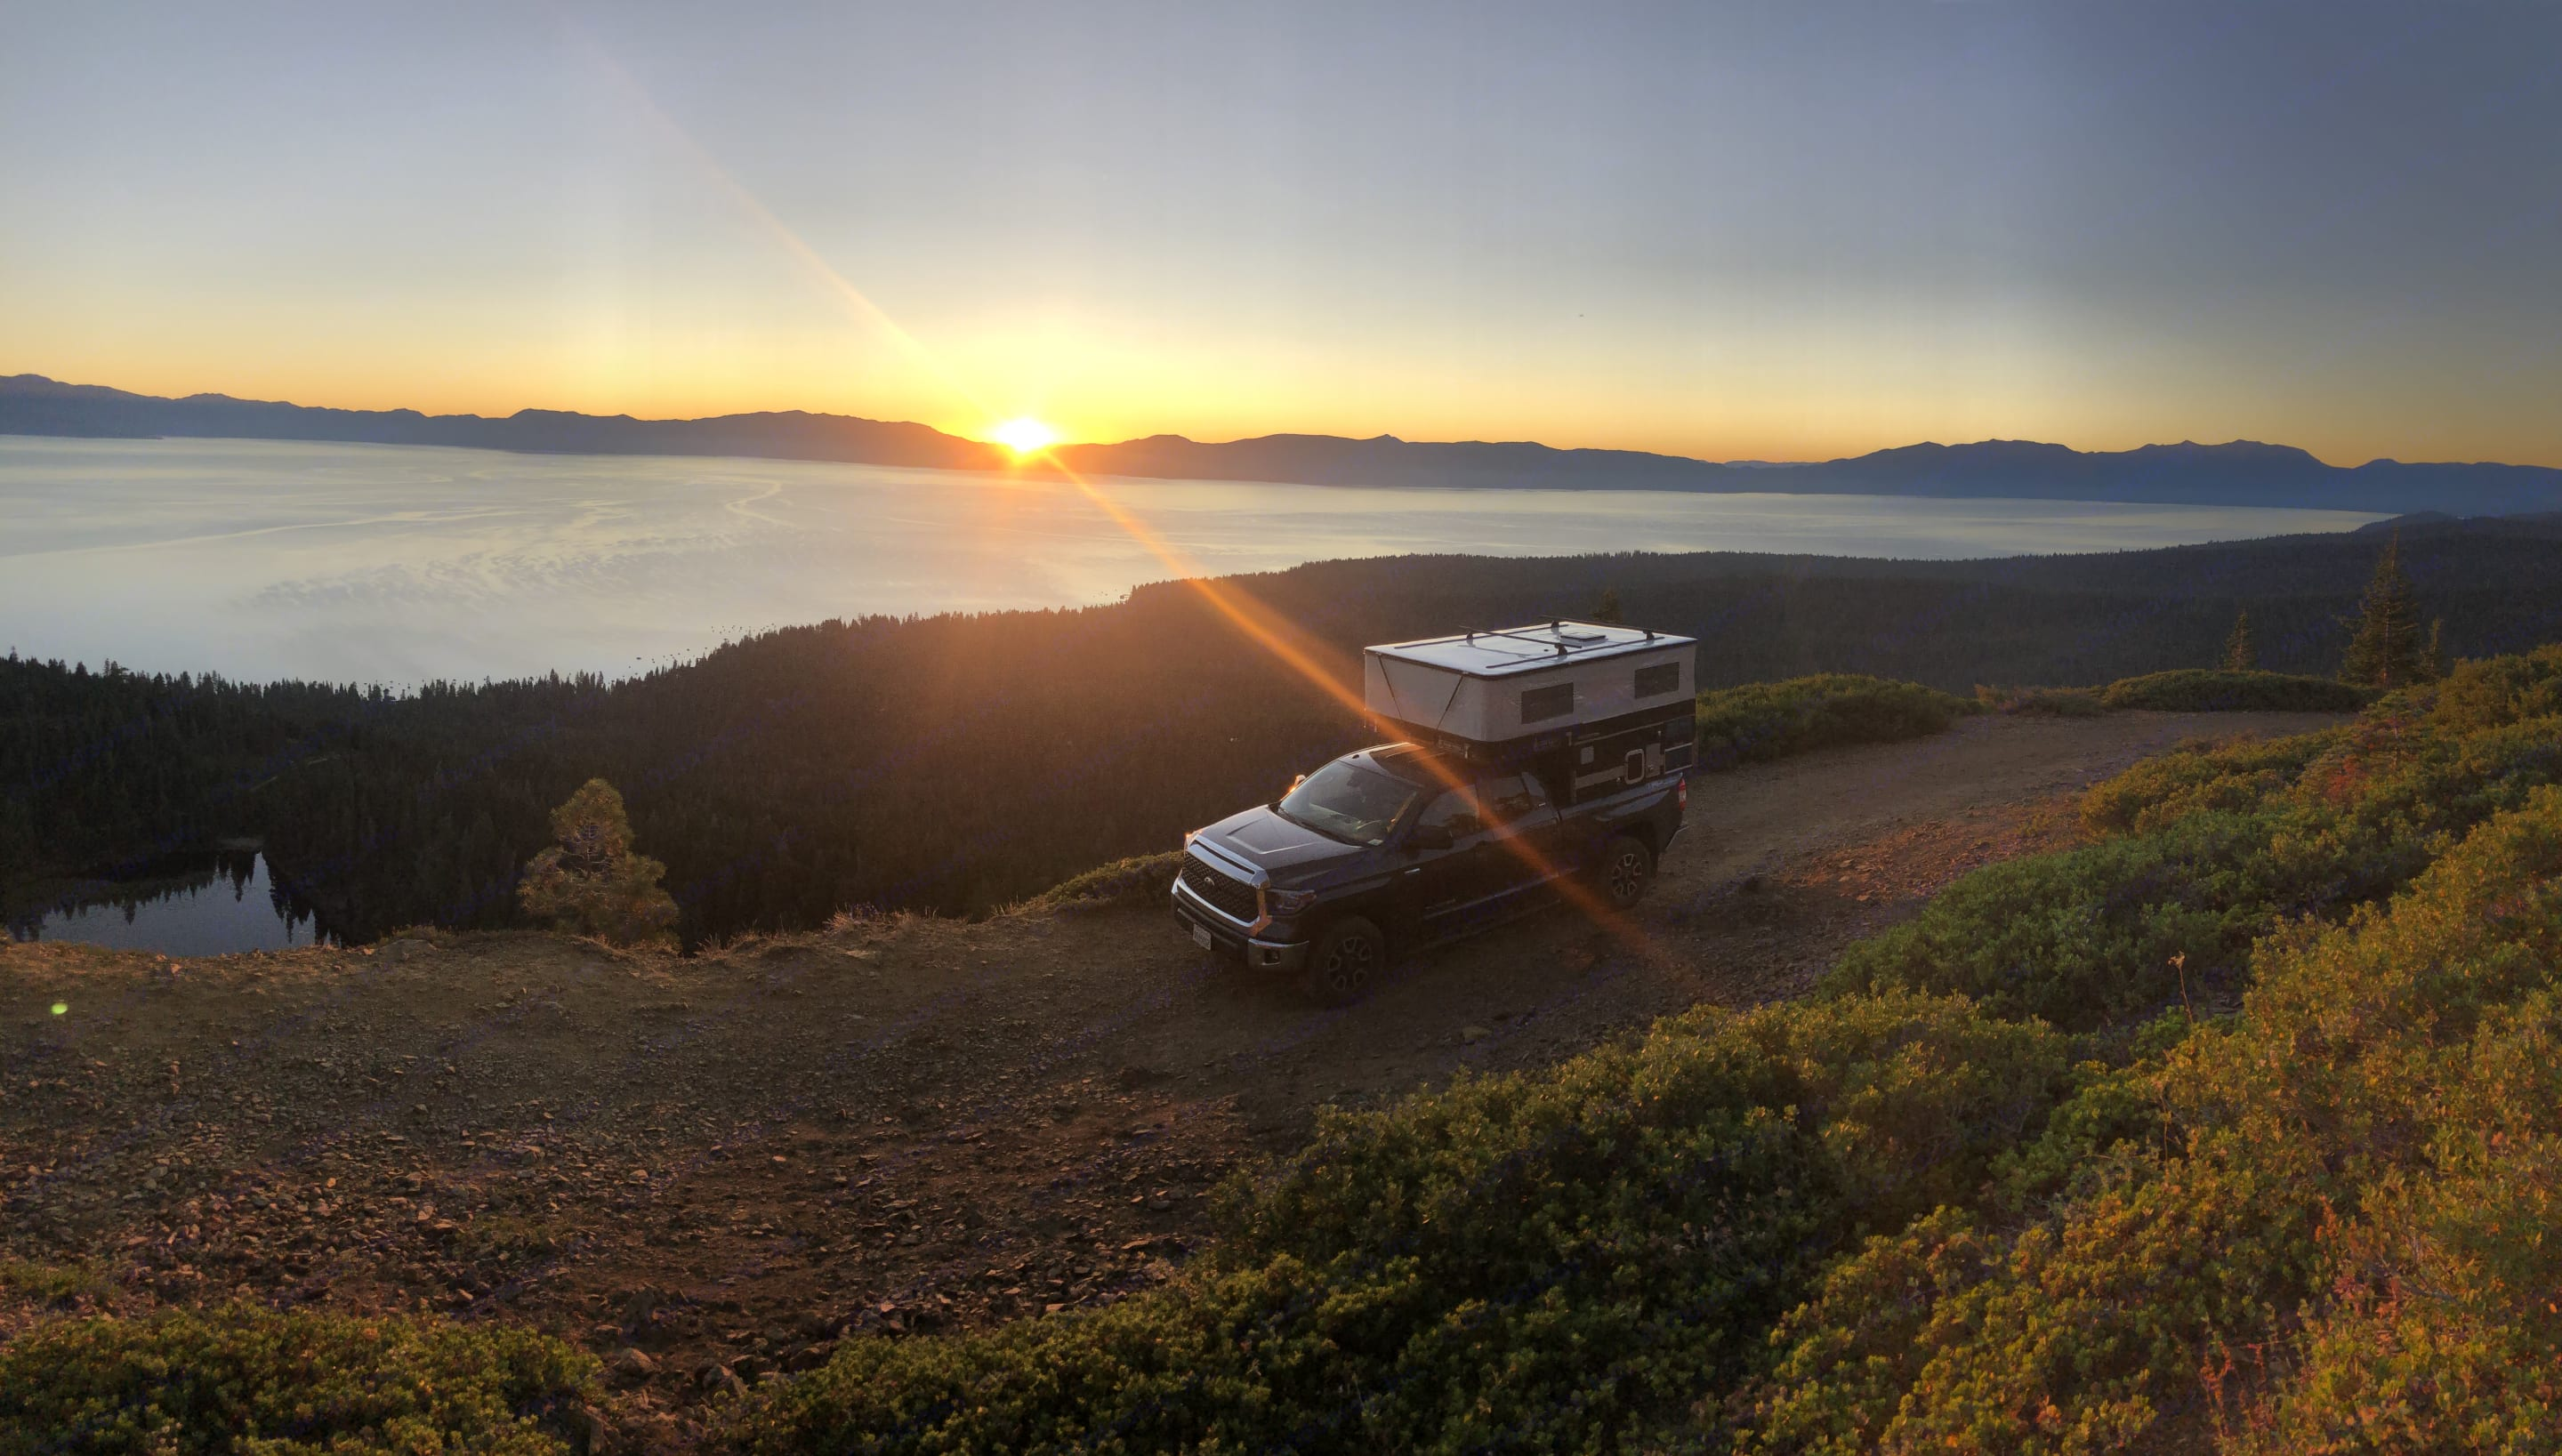 no generator noise up here! this is one of our favorite places to camp over looking Tahoe!. Four Wheel Campers Hawk 2019